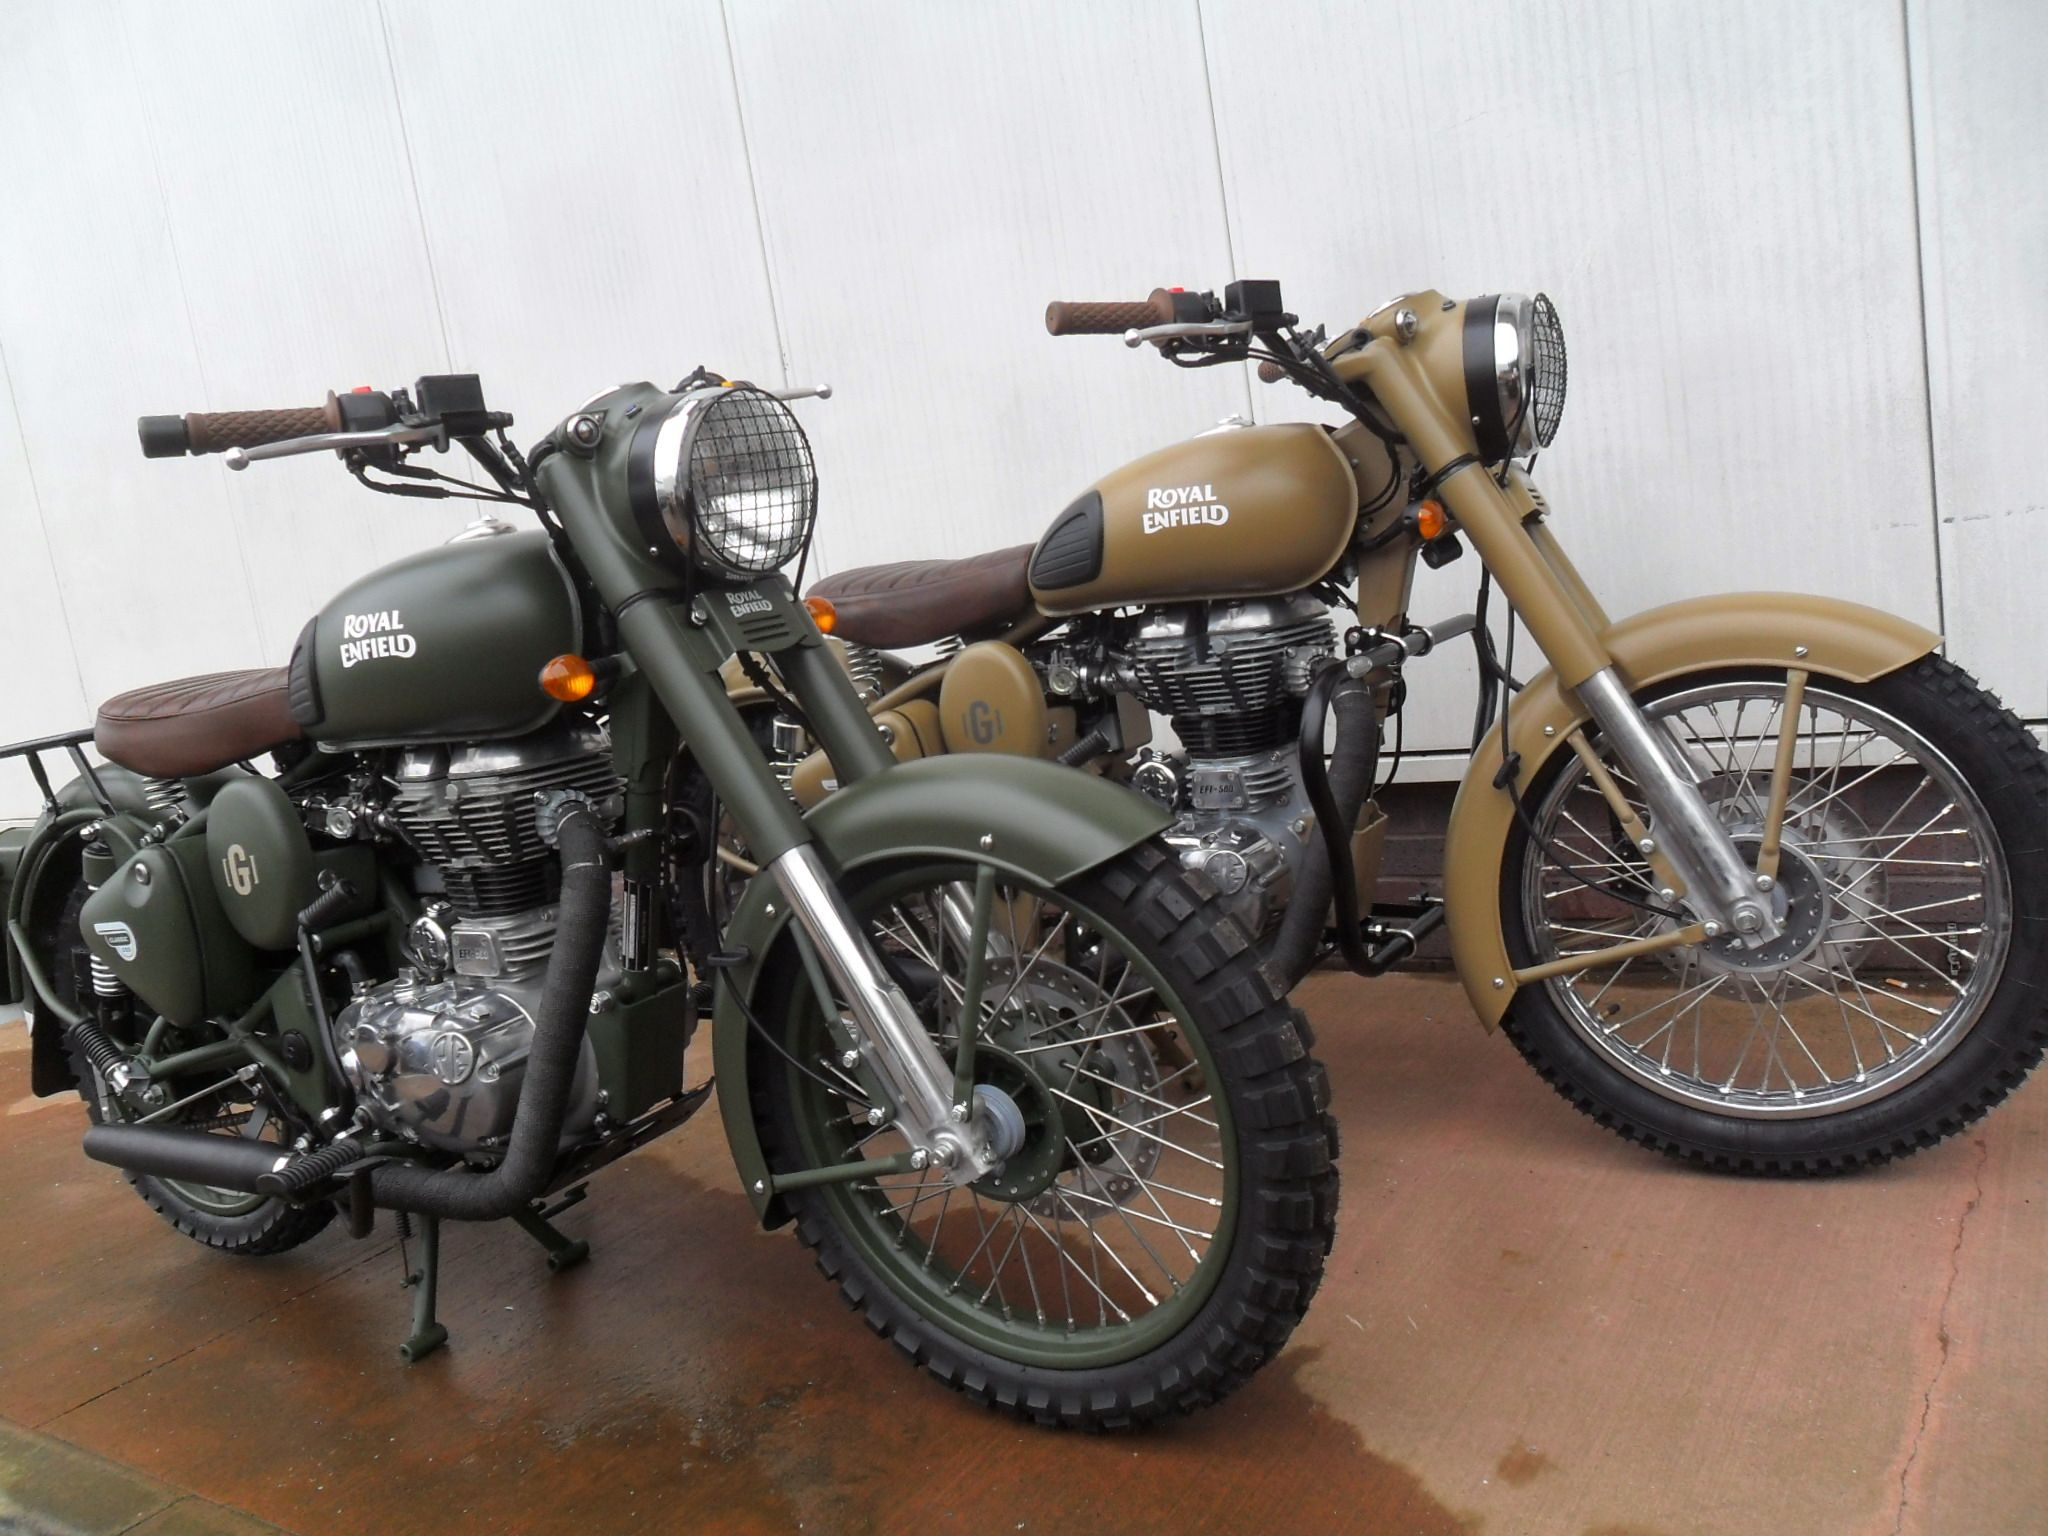 royal enfield classic 500 desert storm by gusto used motorcycles edinburgh ian murray. Black Bedroom Furniture Sets. Home Design Ideas